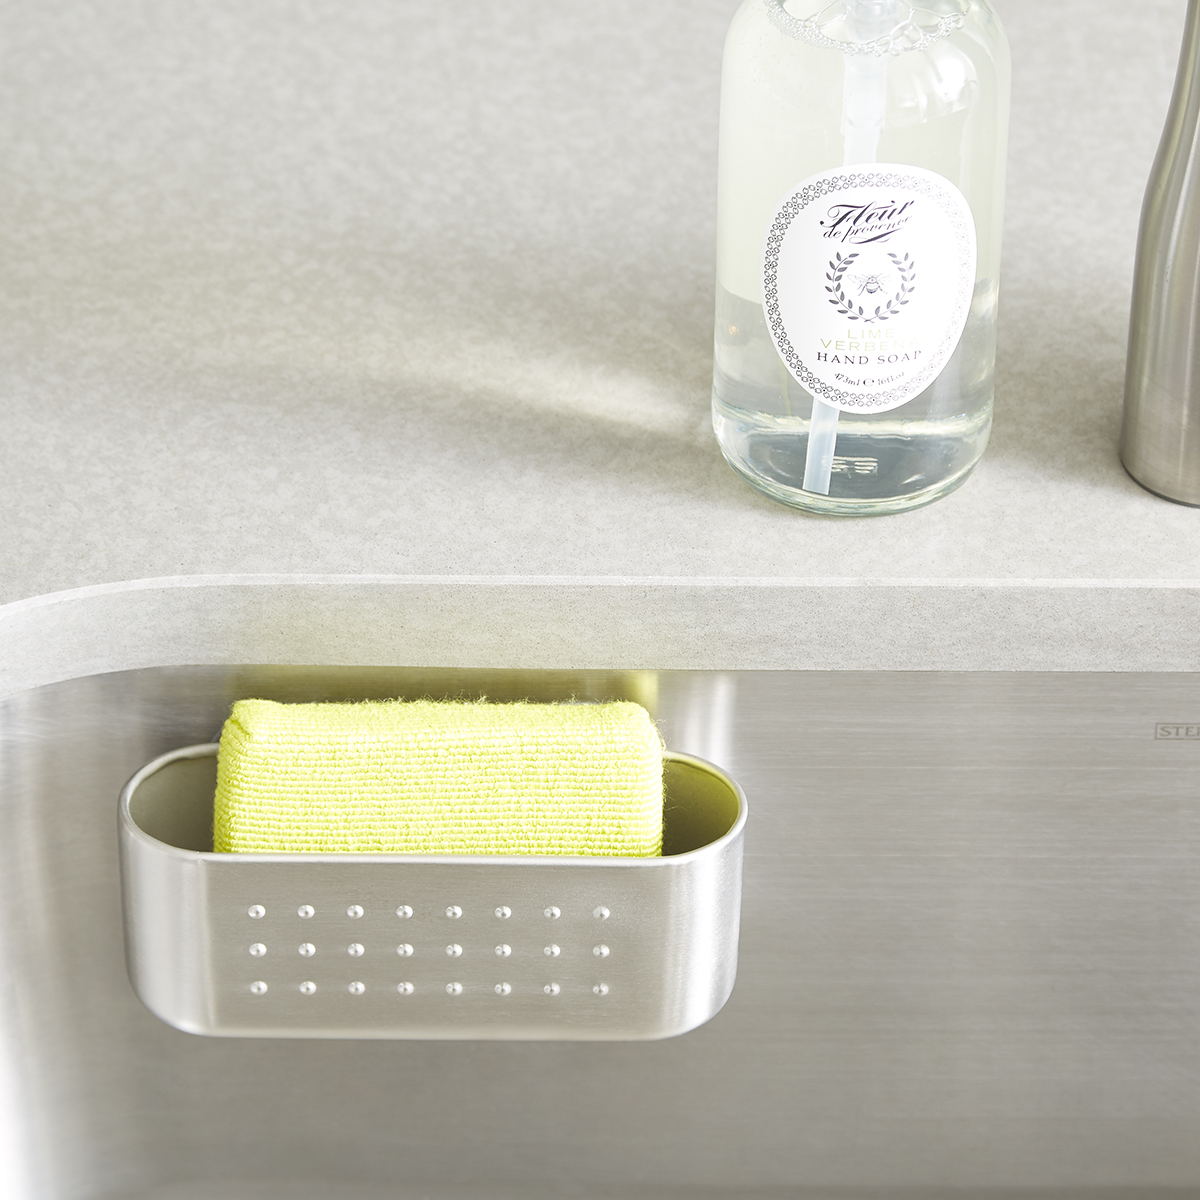 iDesign Forma Suction Sink Center